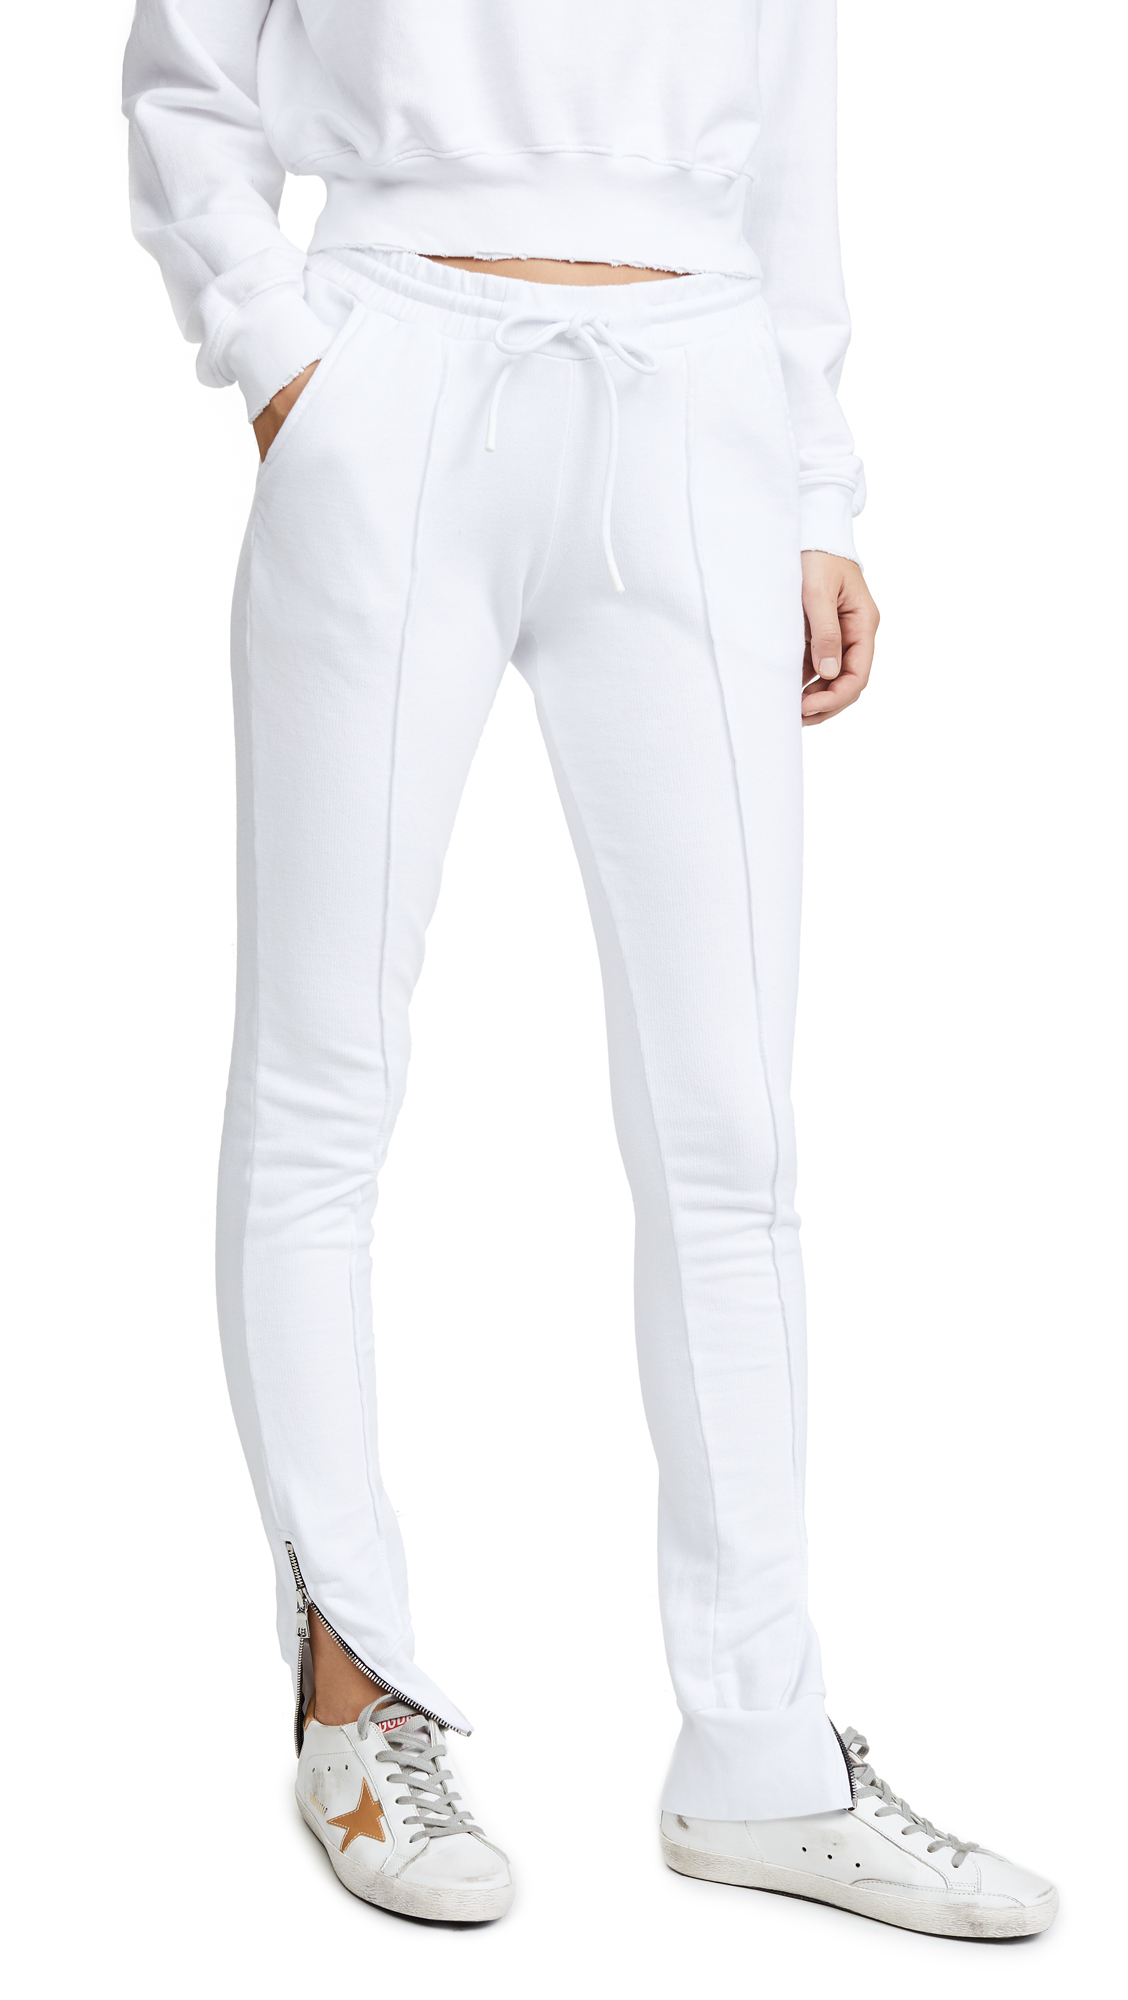 Cotton Citizen Milan Jogger Sweatpants